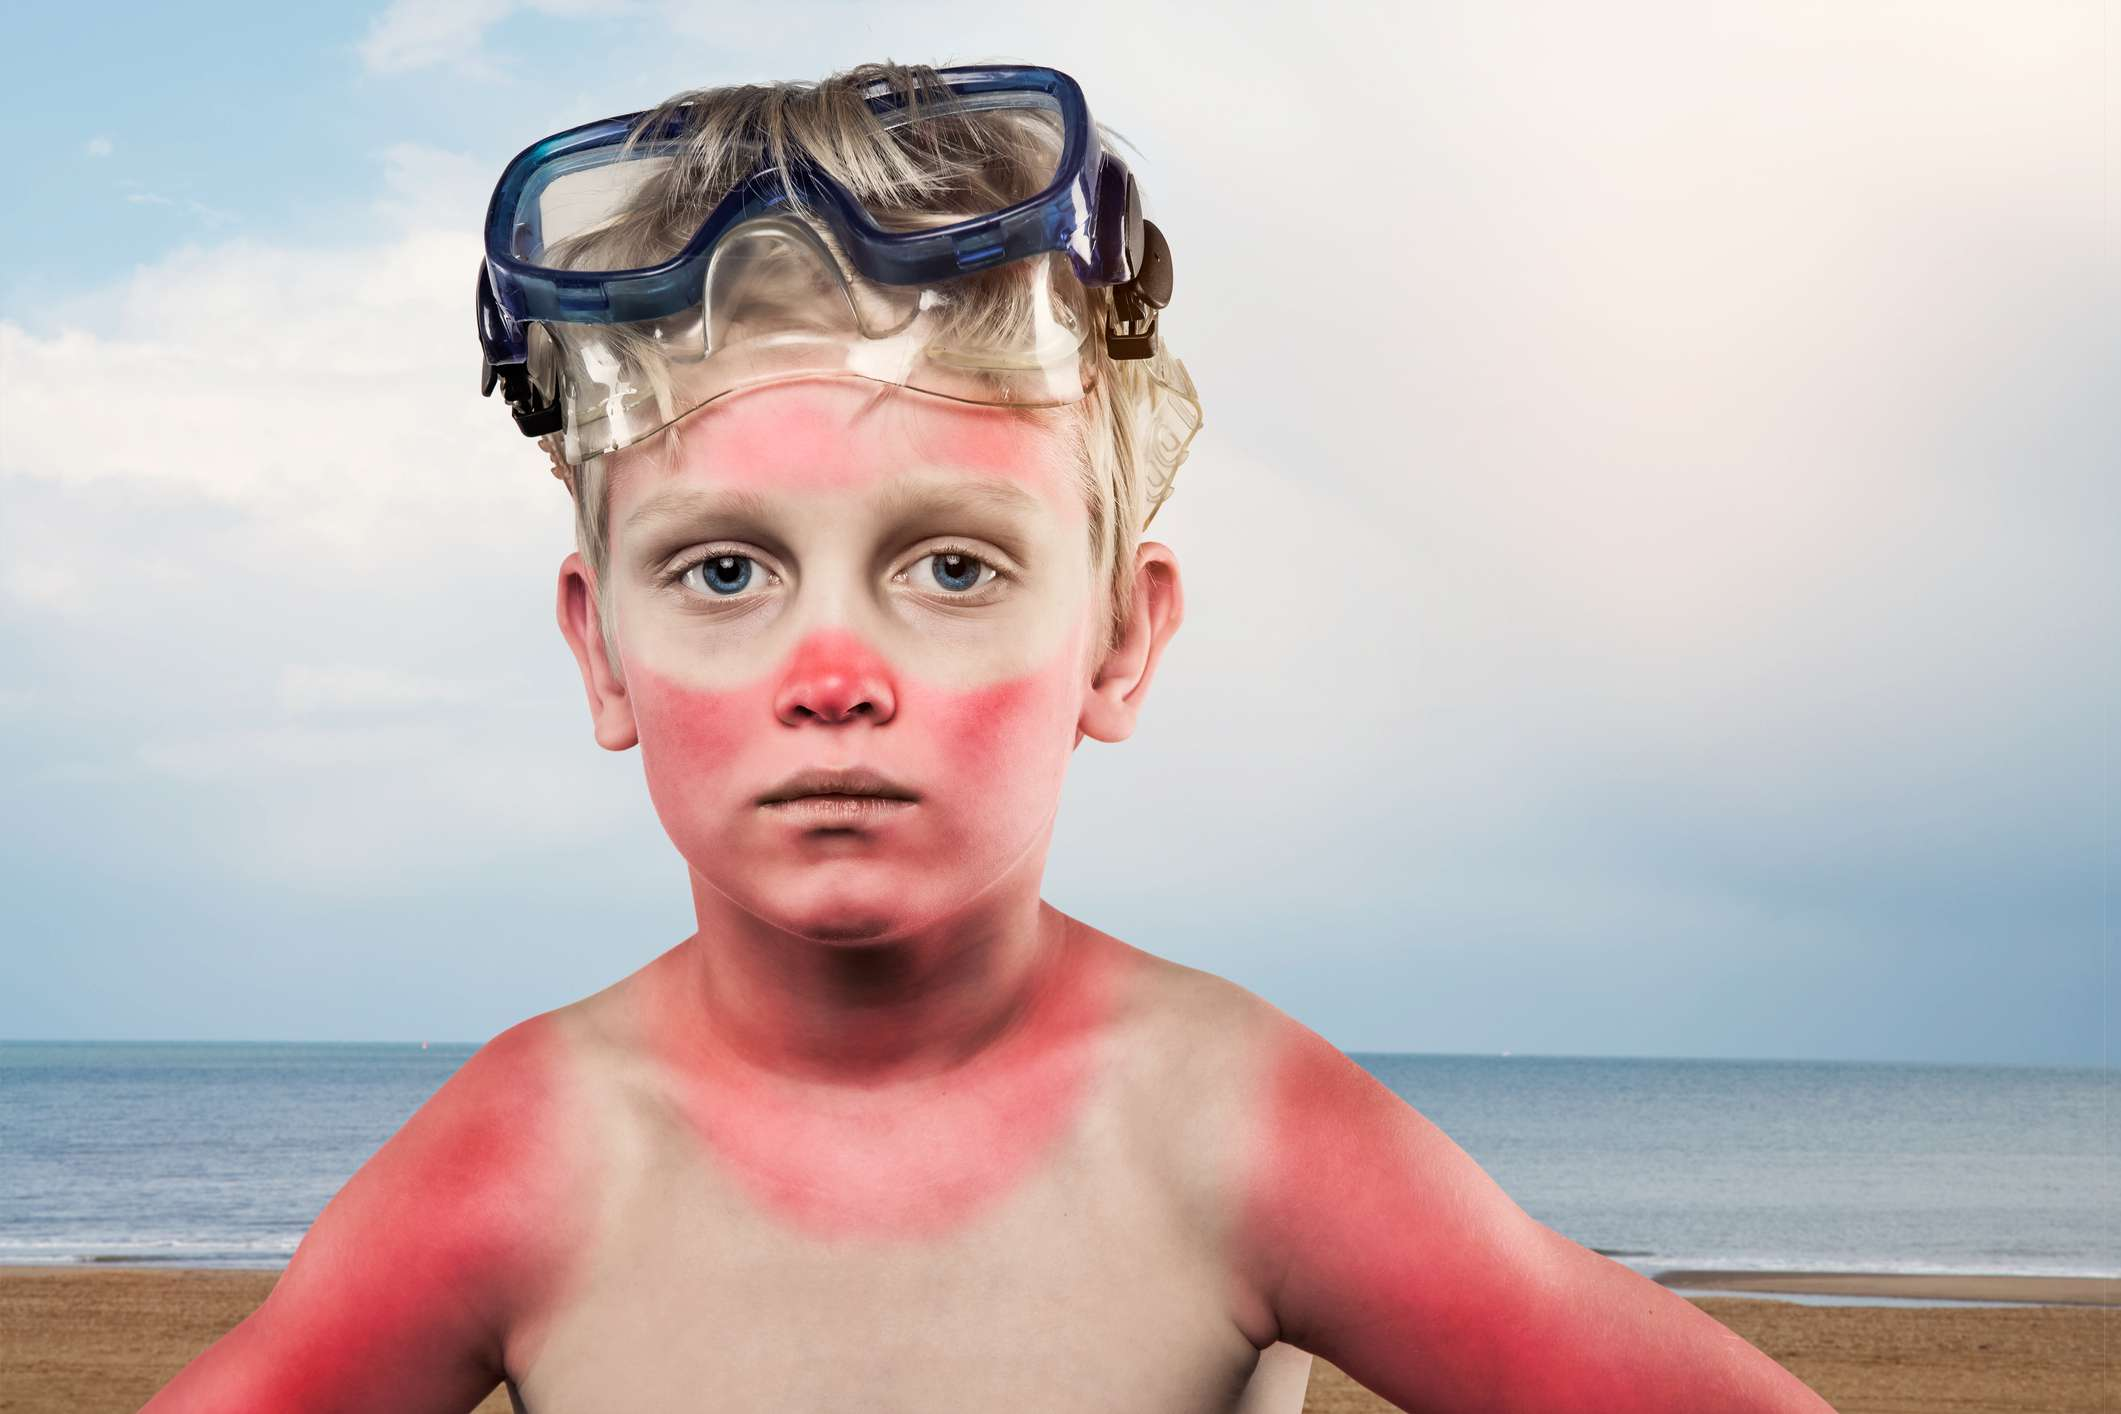 Child with sunburn on face and body